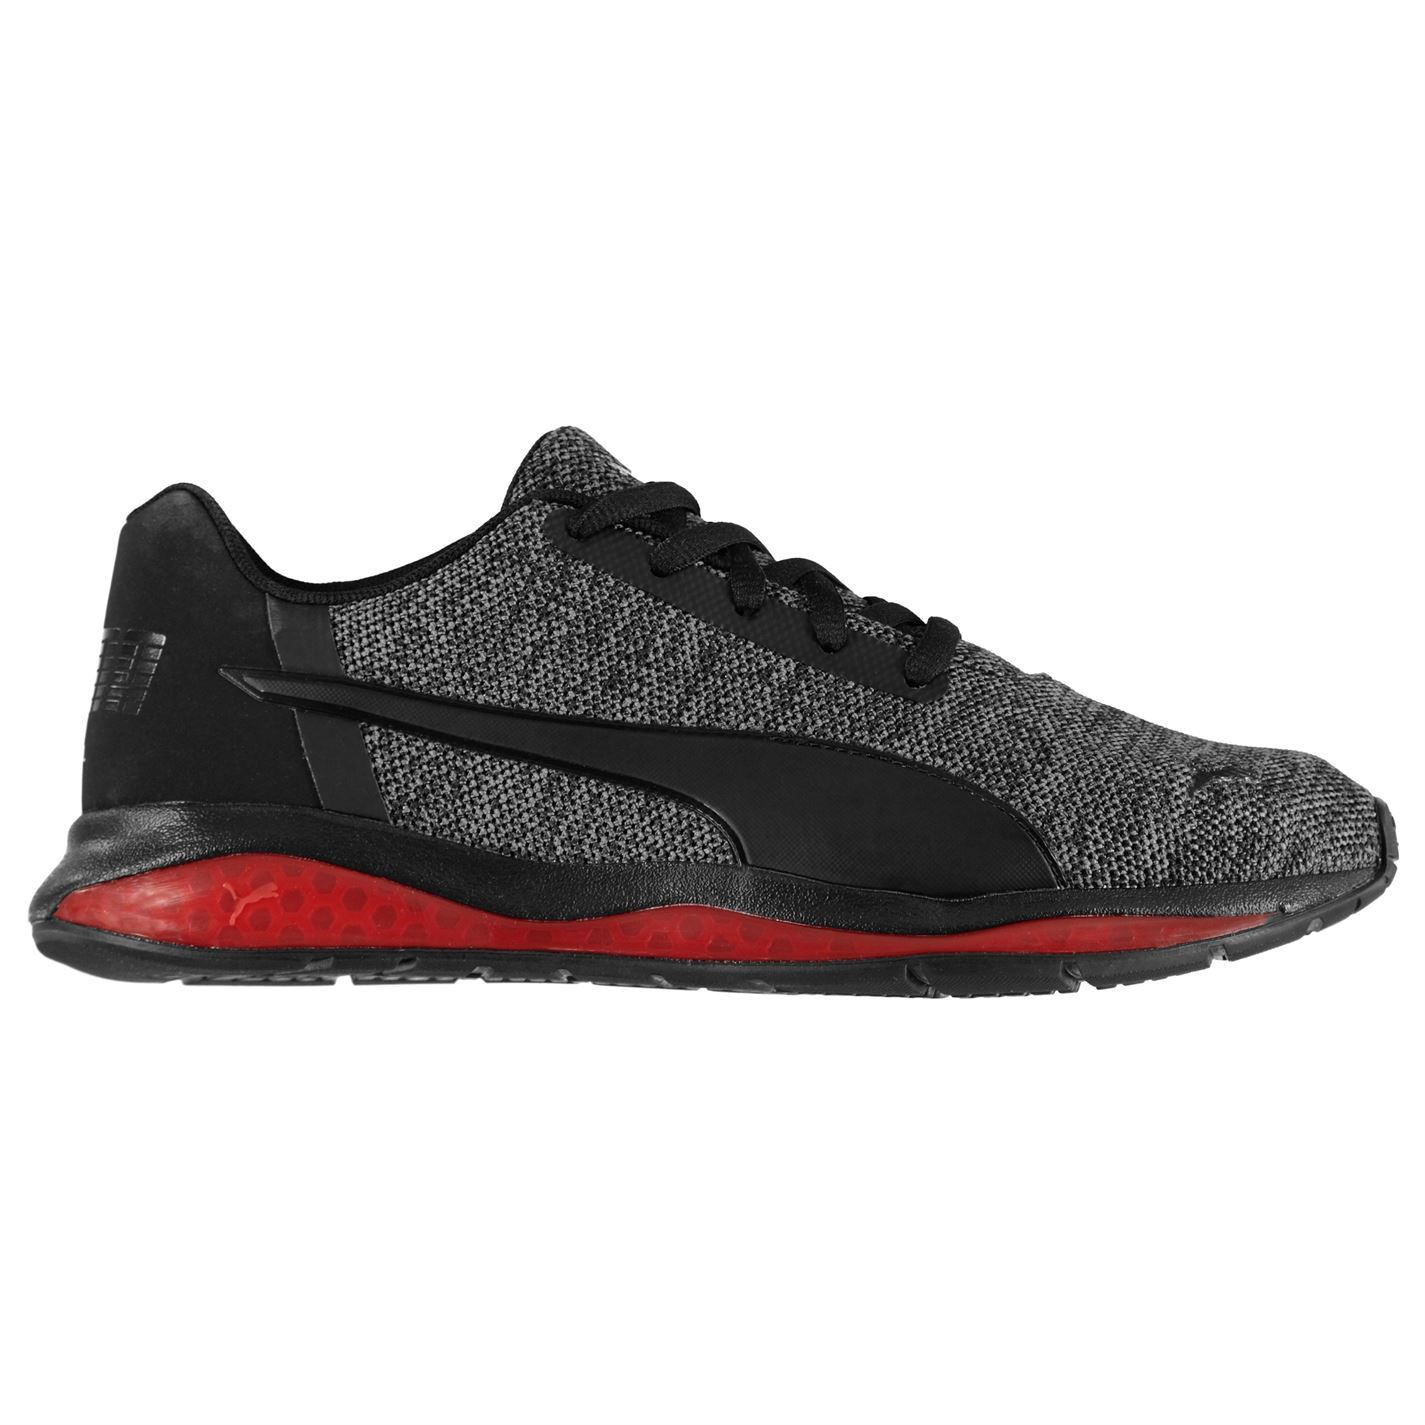 Median Sortie Andes  puma ignite limitless running shoes - 50% OFF - tajpalace.net